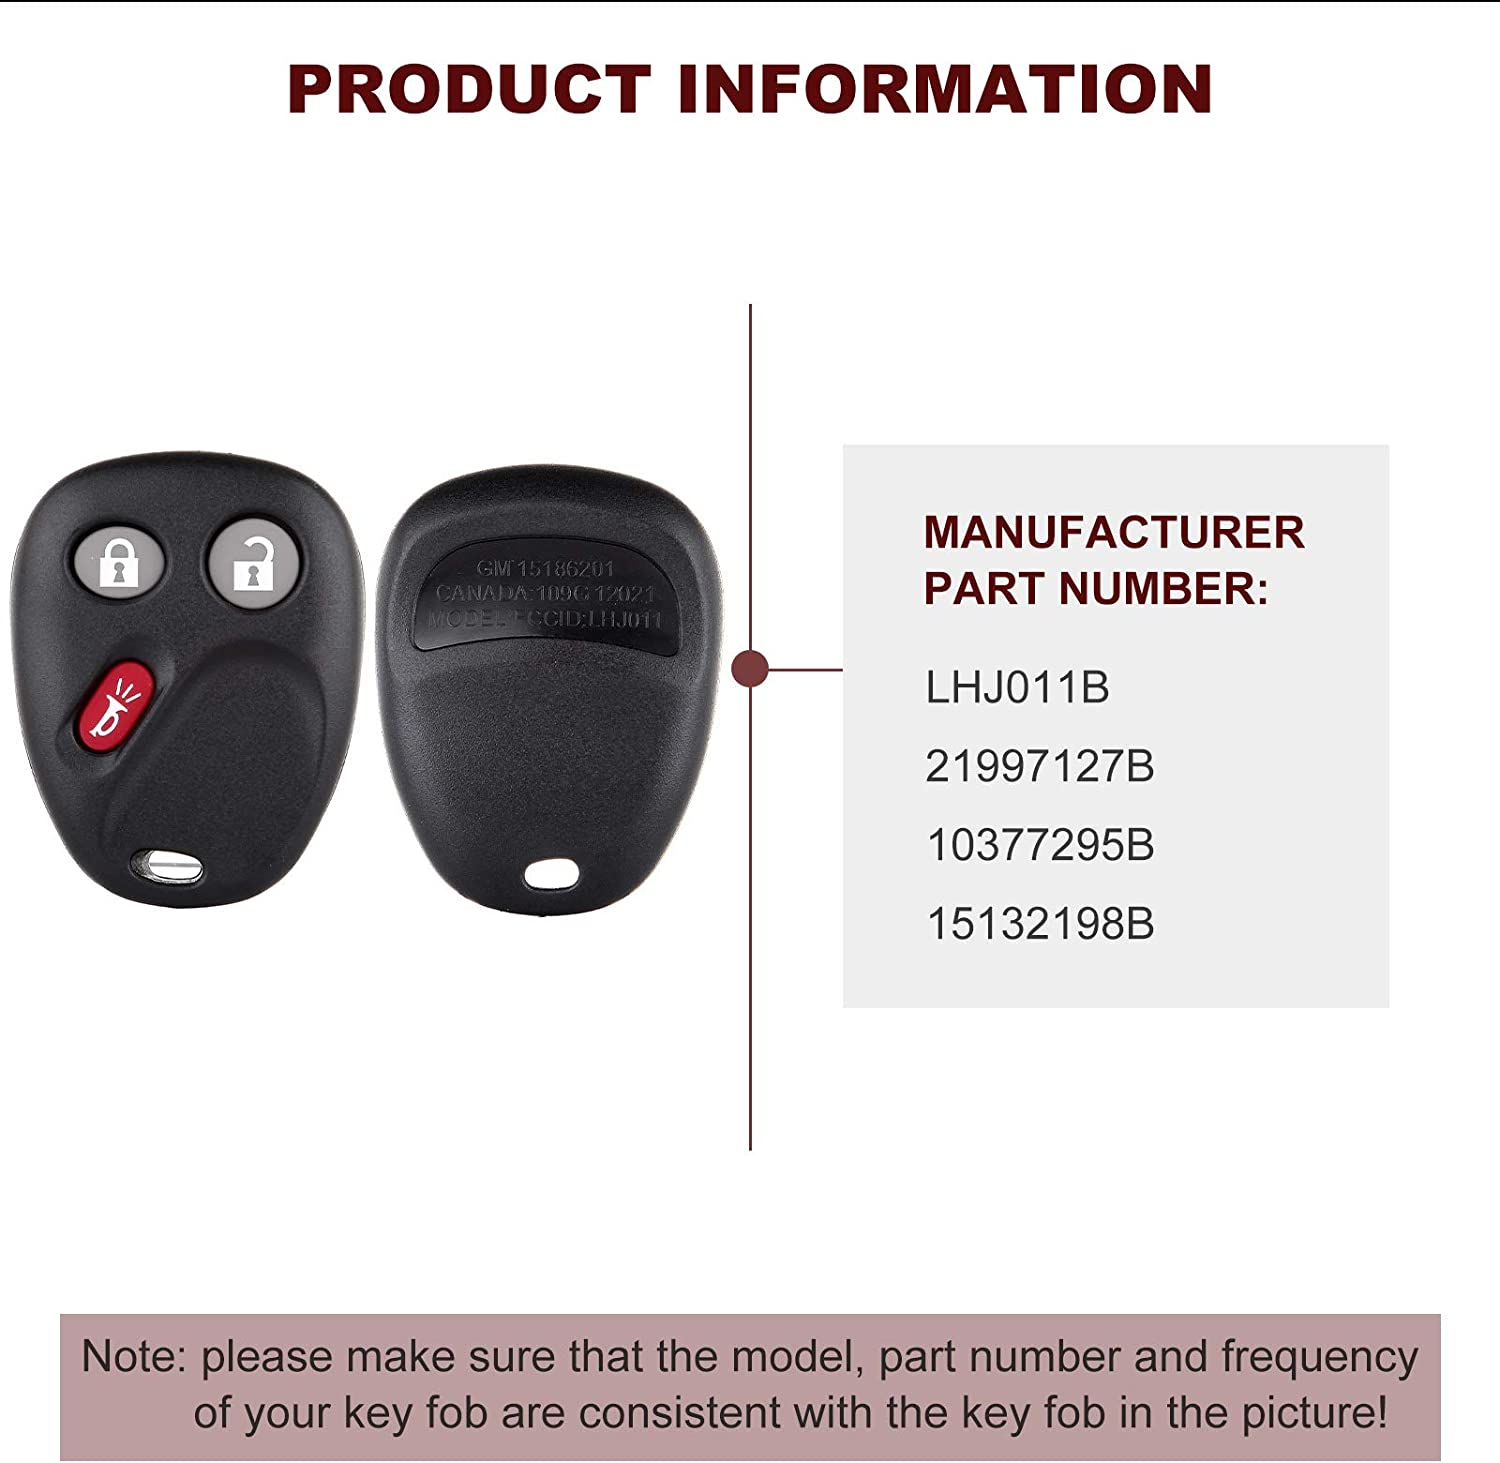 ANGLEWIDE Car Key Fob Keyless Entry Remote Replacement for 03-07 for Cadillac for Chevrolet for GMC for Hummer for Pontiac for Saturn FCC 21997127 3 Buttons Black 2pad